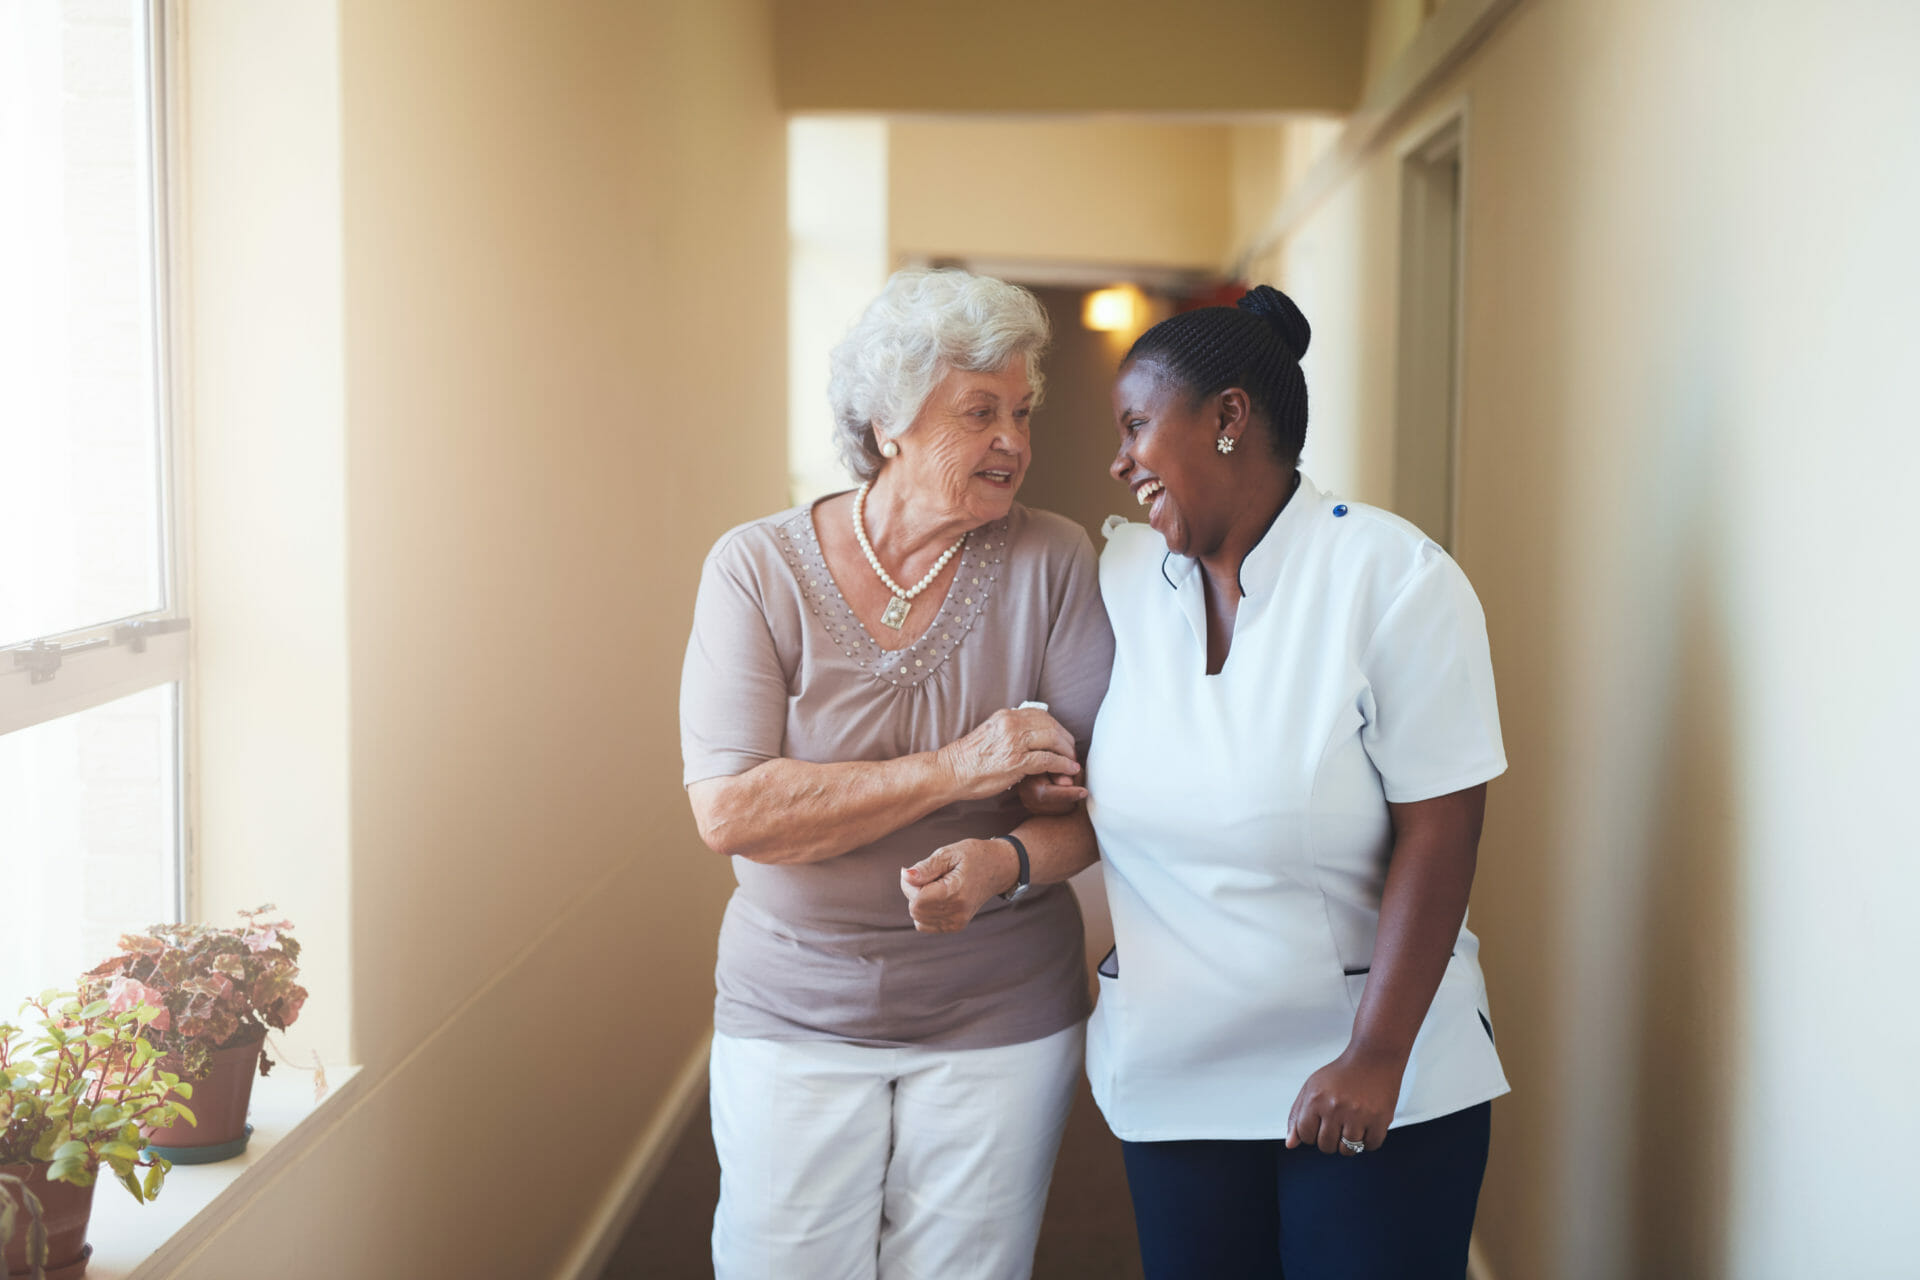 Conversation between care worker and woman